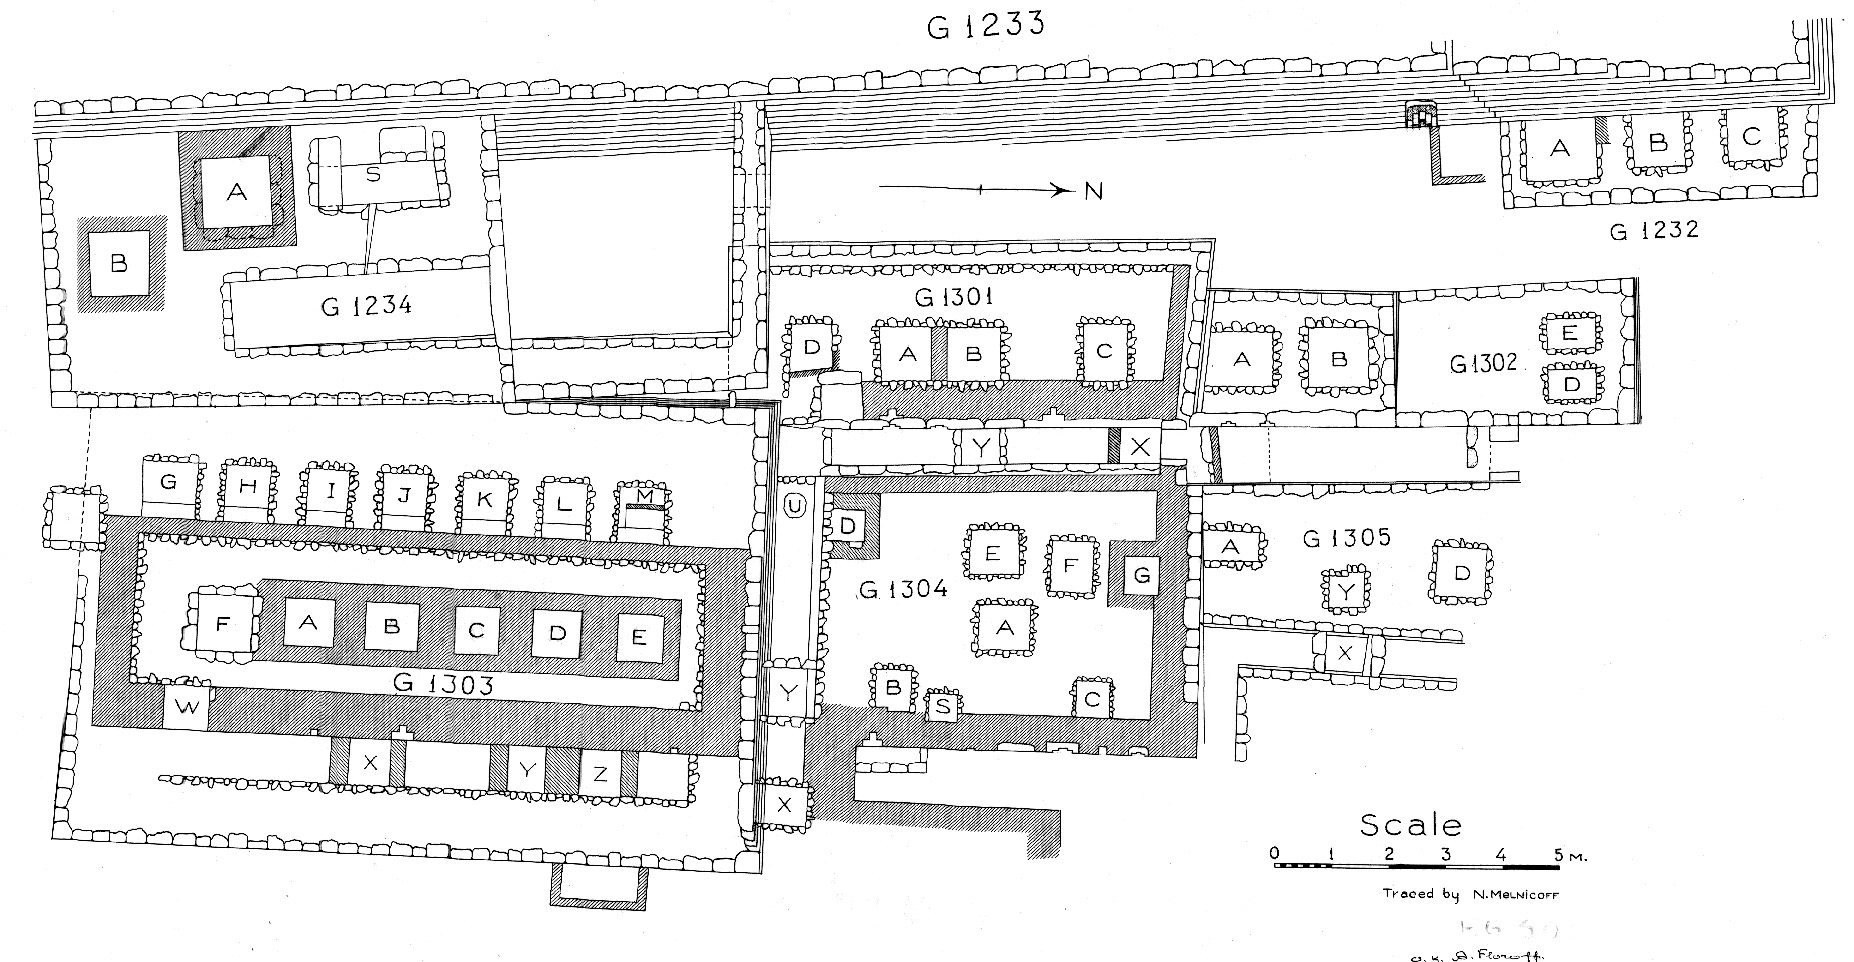 Maps and plans: Plan of cemetery G 1300 (N portion), G 1232 - 1234, G 1301 - 1305